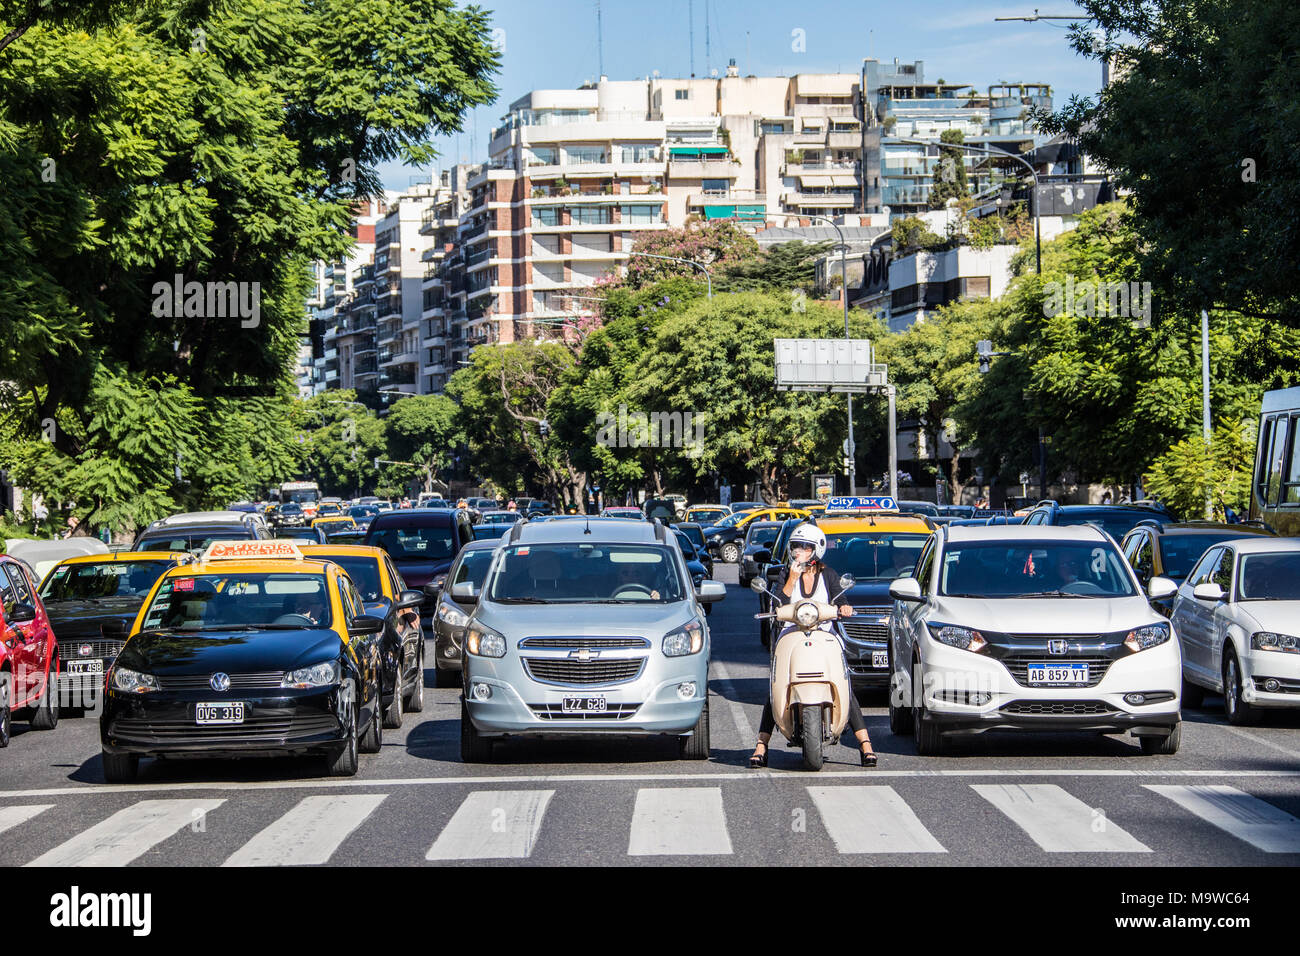 Traffic llined up at a stoplight, Buenos Aires, Argentina - Stock Image